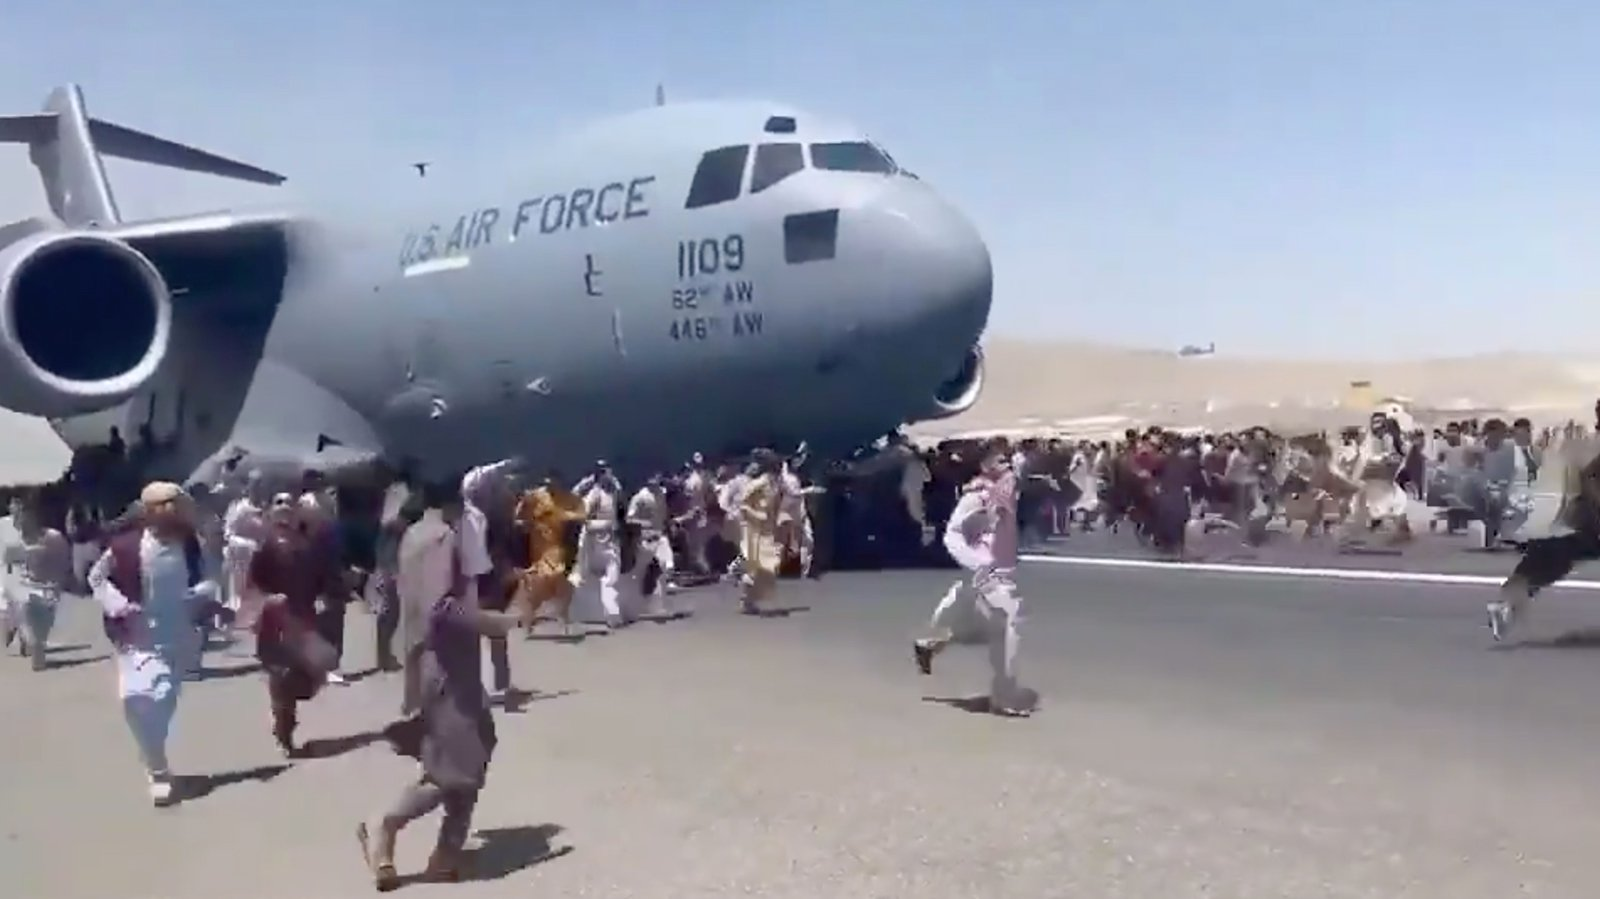 Hundreds of people run alongside a U.S. Air Force C-17 transport plane as it moves down a runway of the international airport, in Kabul, Afghanistan, Aug. 16, 2021. Thousands of Afghans rushed onto the tarmac at the airport, attempting to flee the Taliban. Video screengrab via Twitter/@Mukhtarwafayee